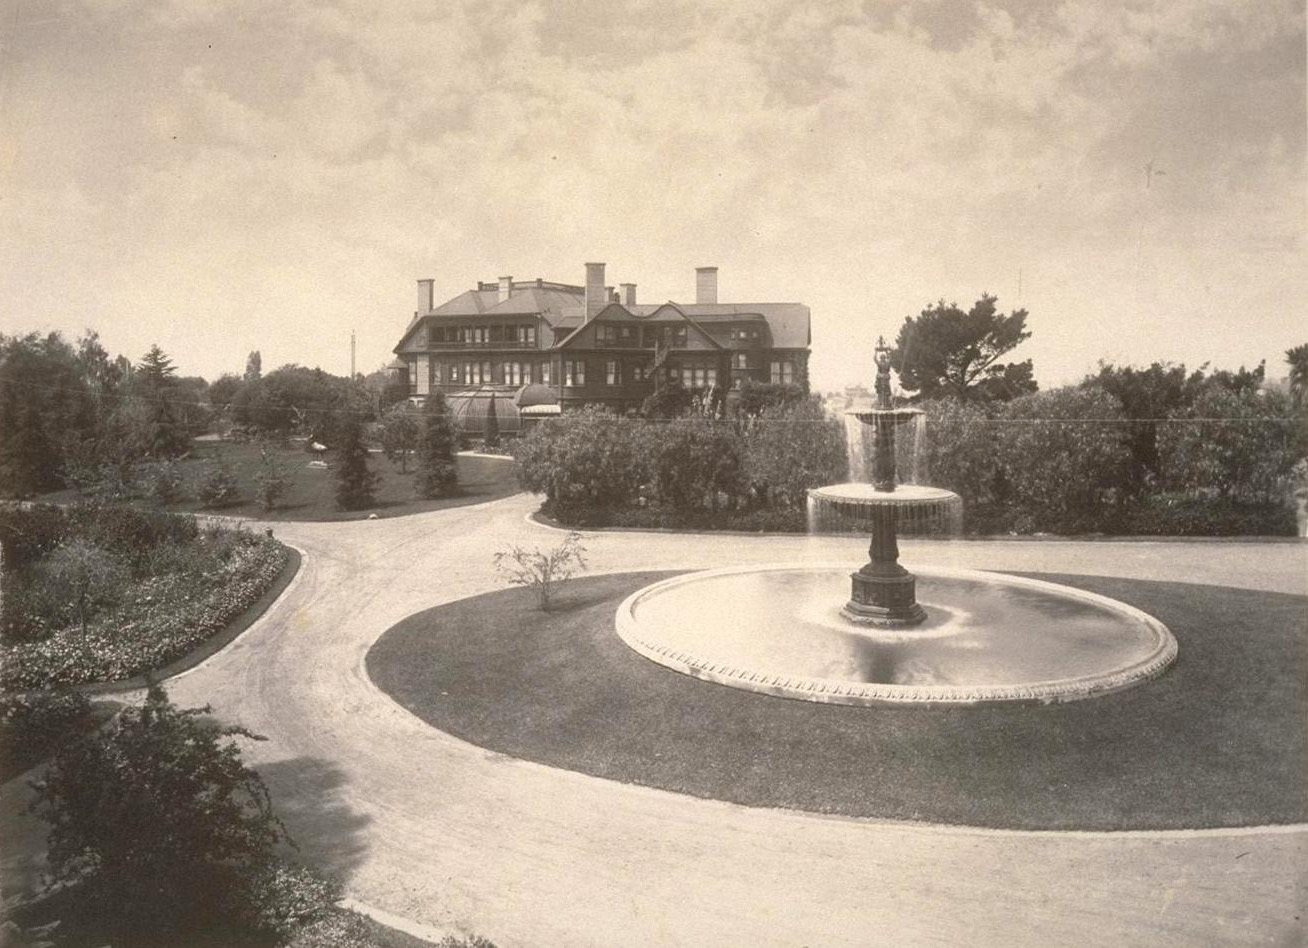 The Smith's estate, Arbor Villa, and their home, Oak Hall, which was demolished in 1932.